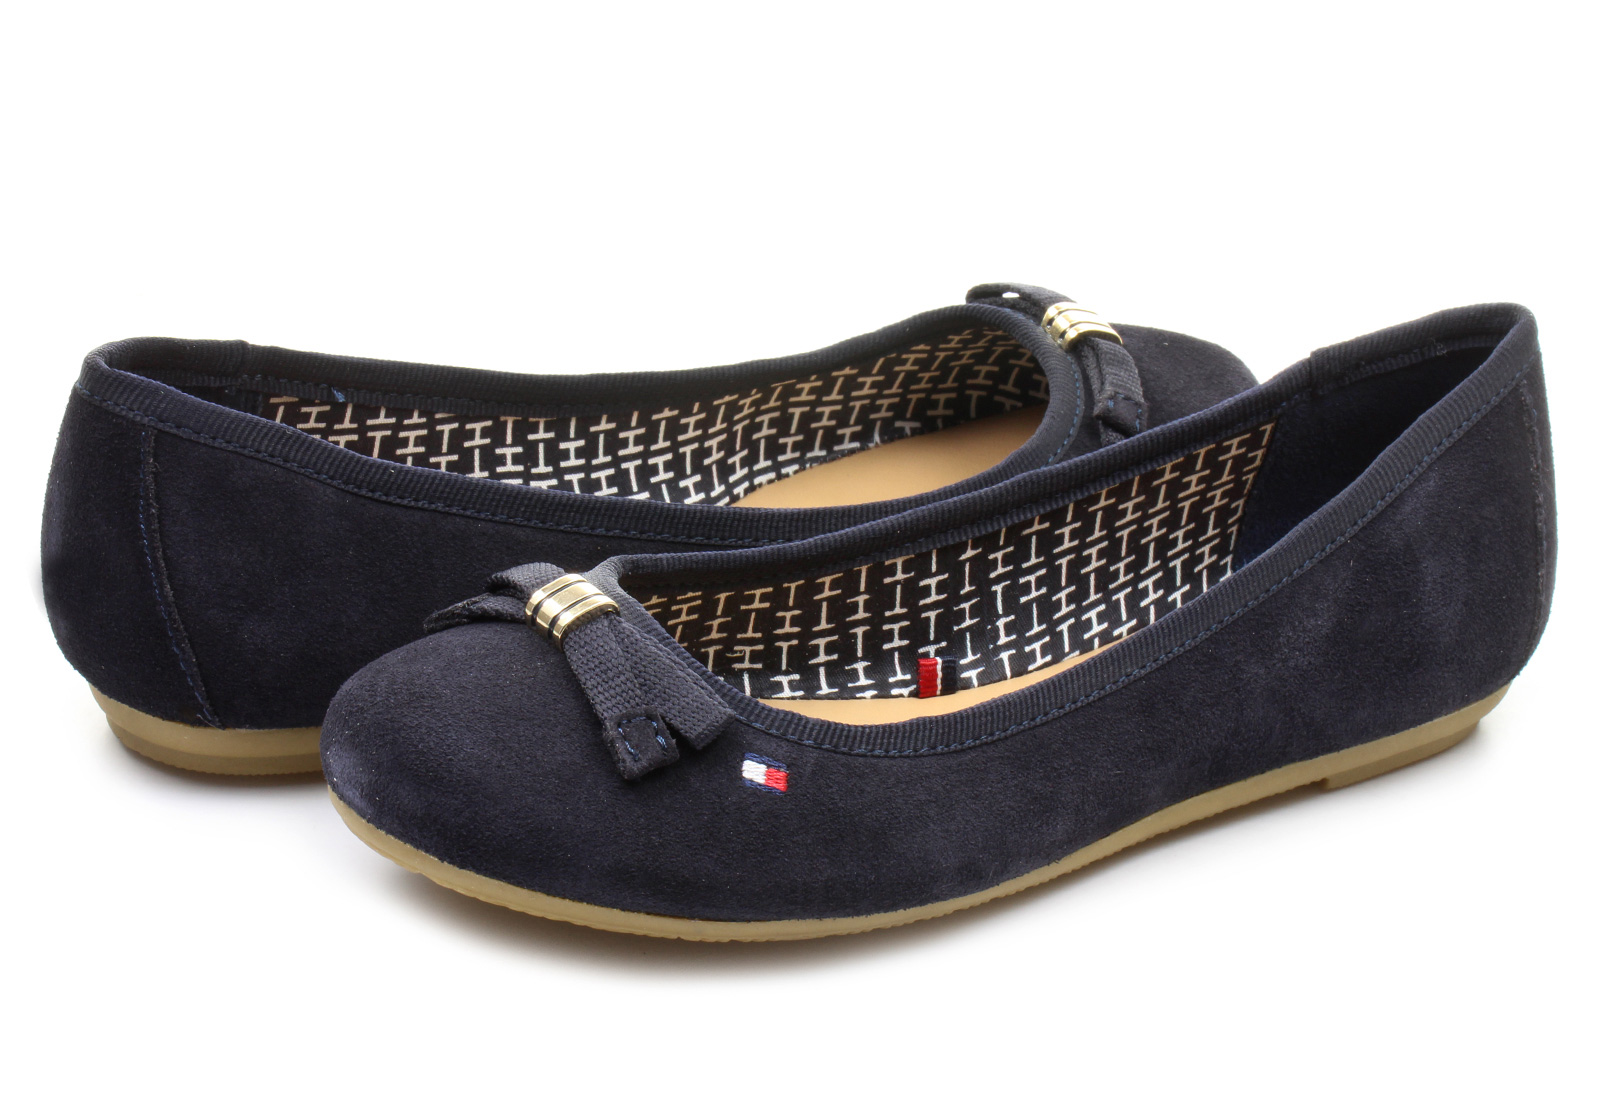 b893139e18 Tommy Hilfiger Balerina - Camilla 51b - 15S-8898-403 - Office Shoes ...